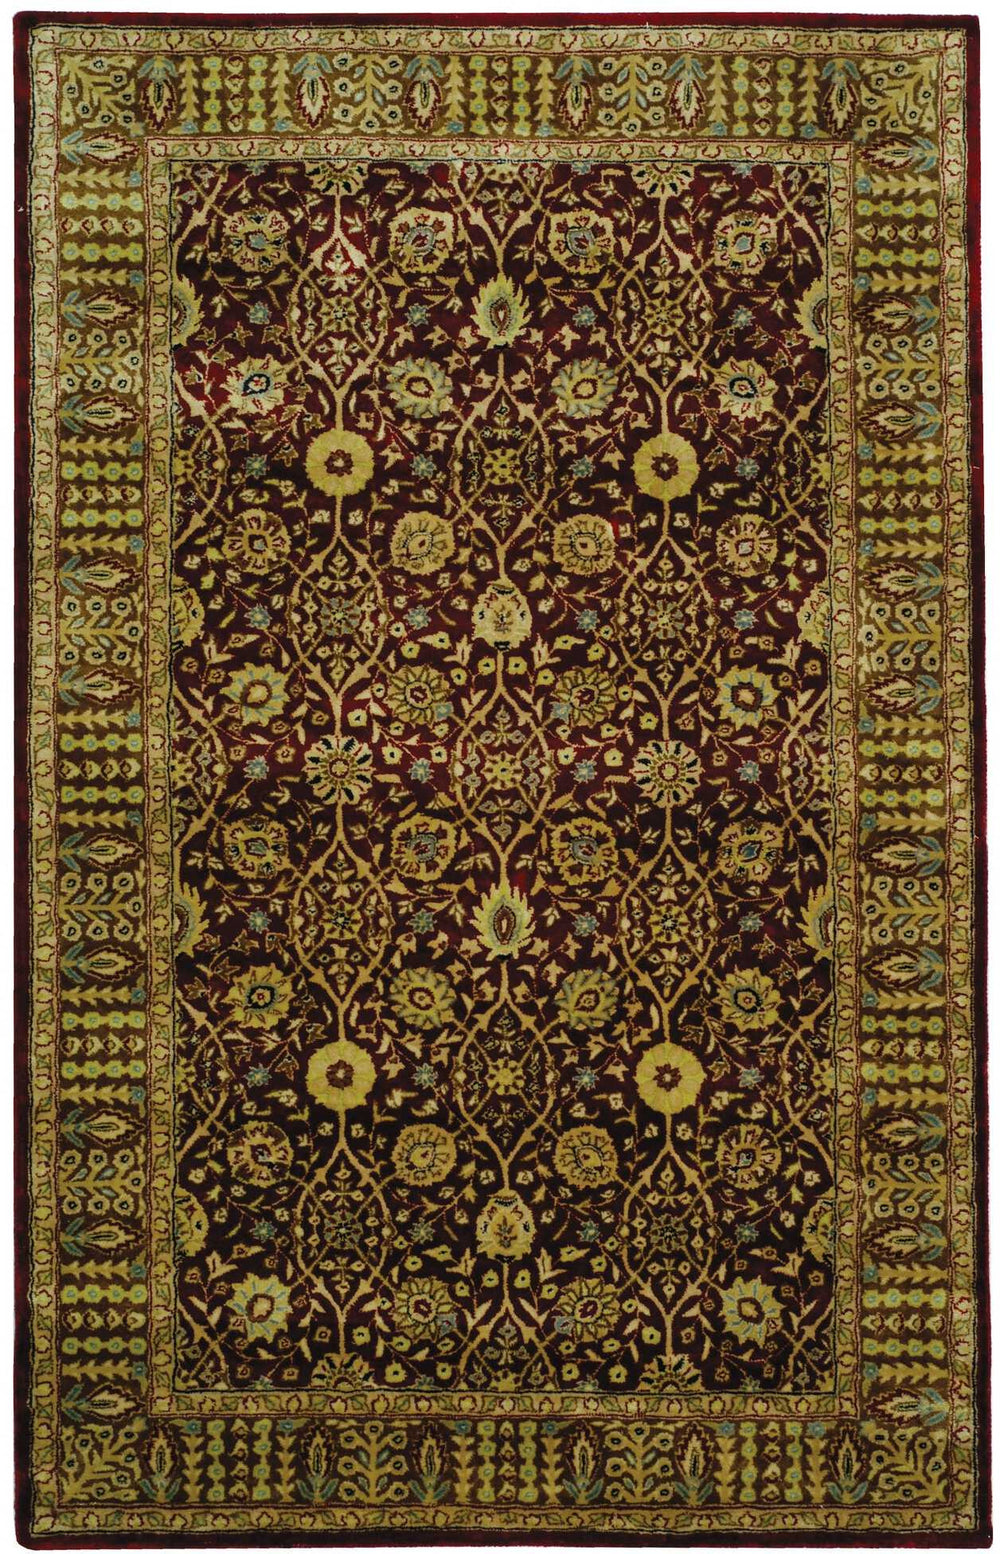 Safavieh Persian Legend PL518 Area Rug